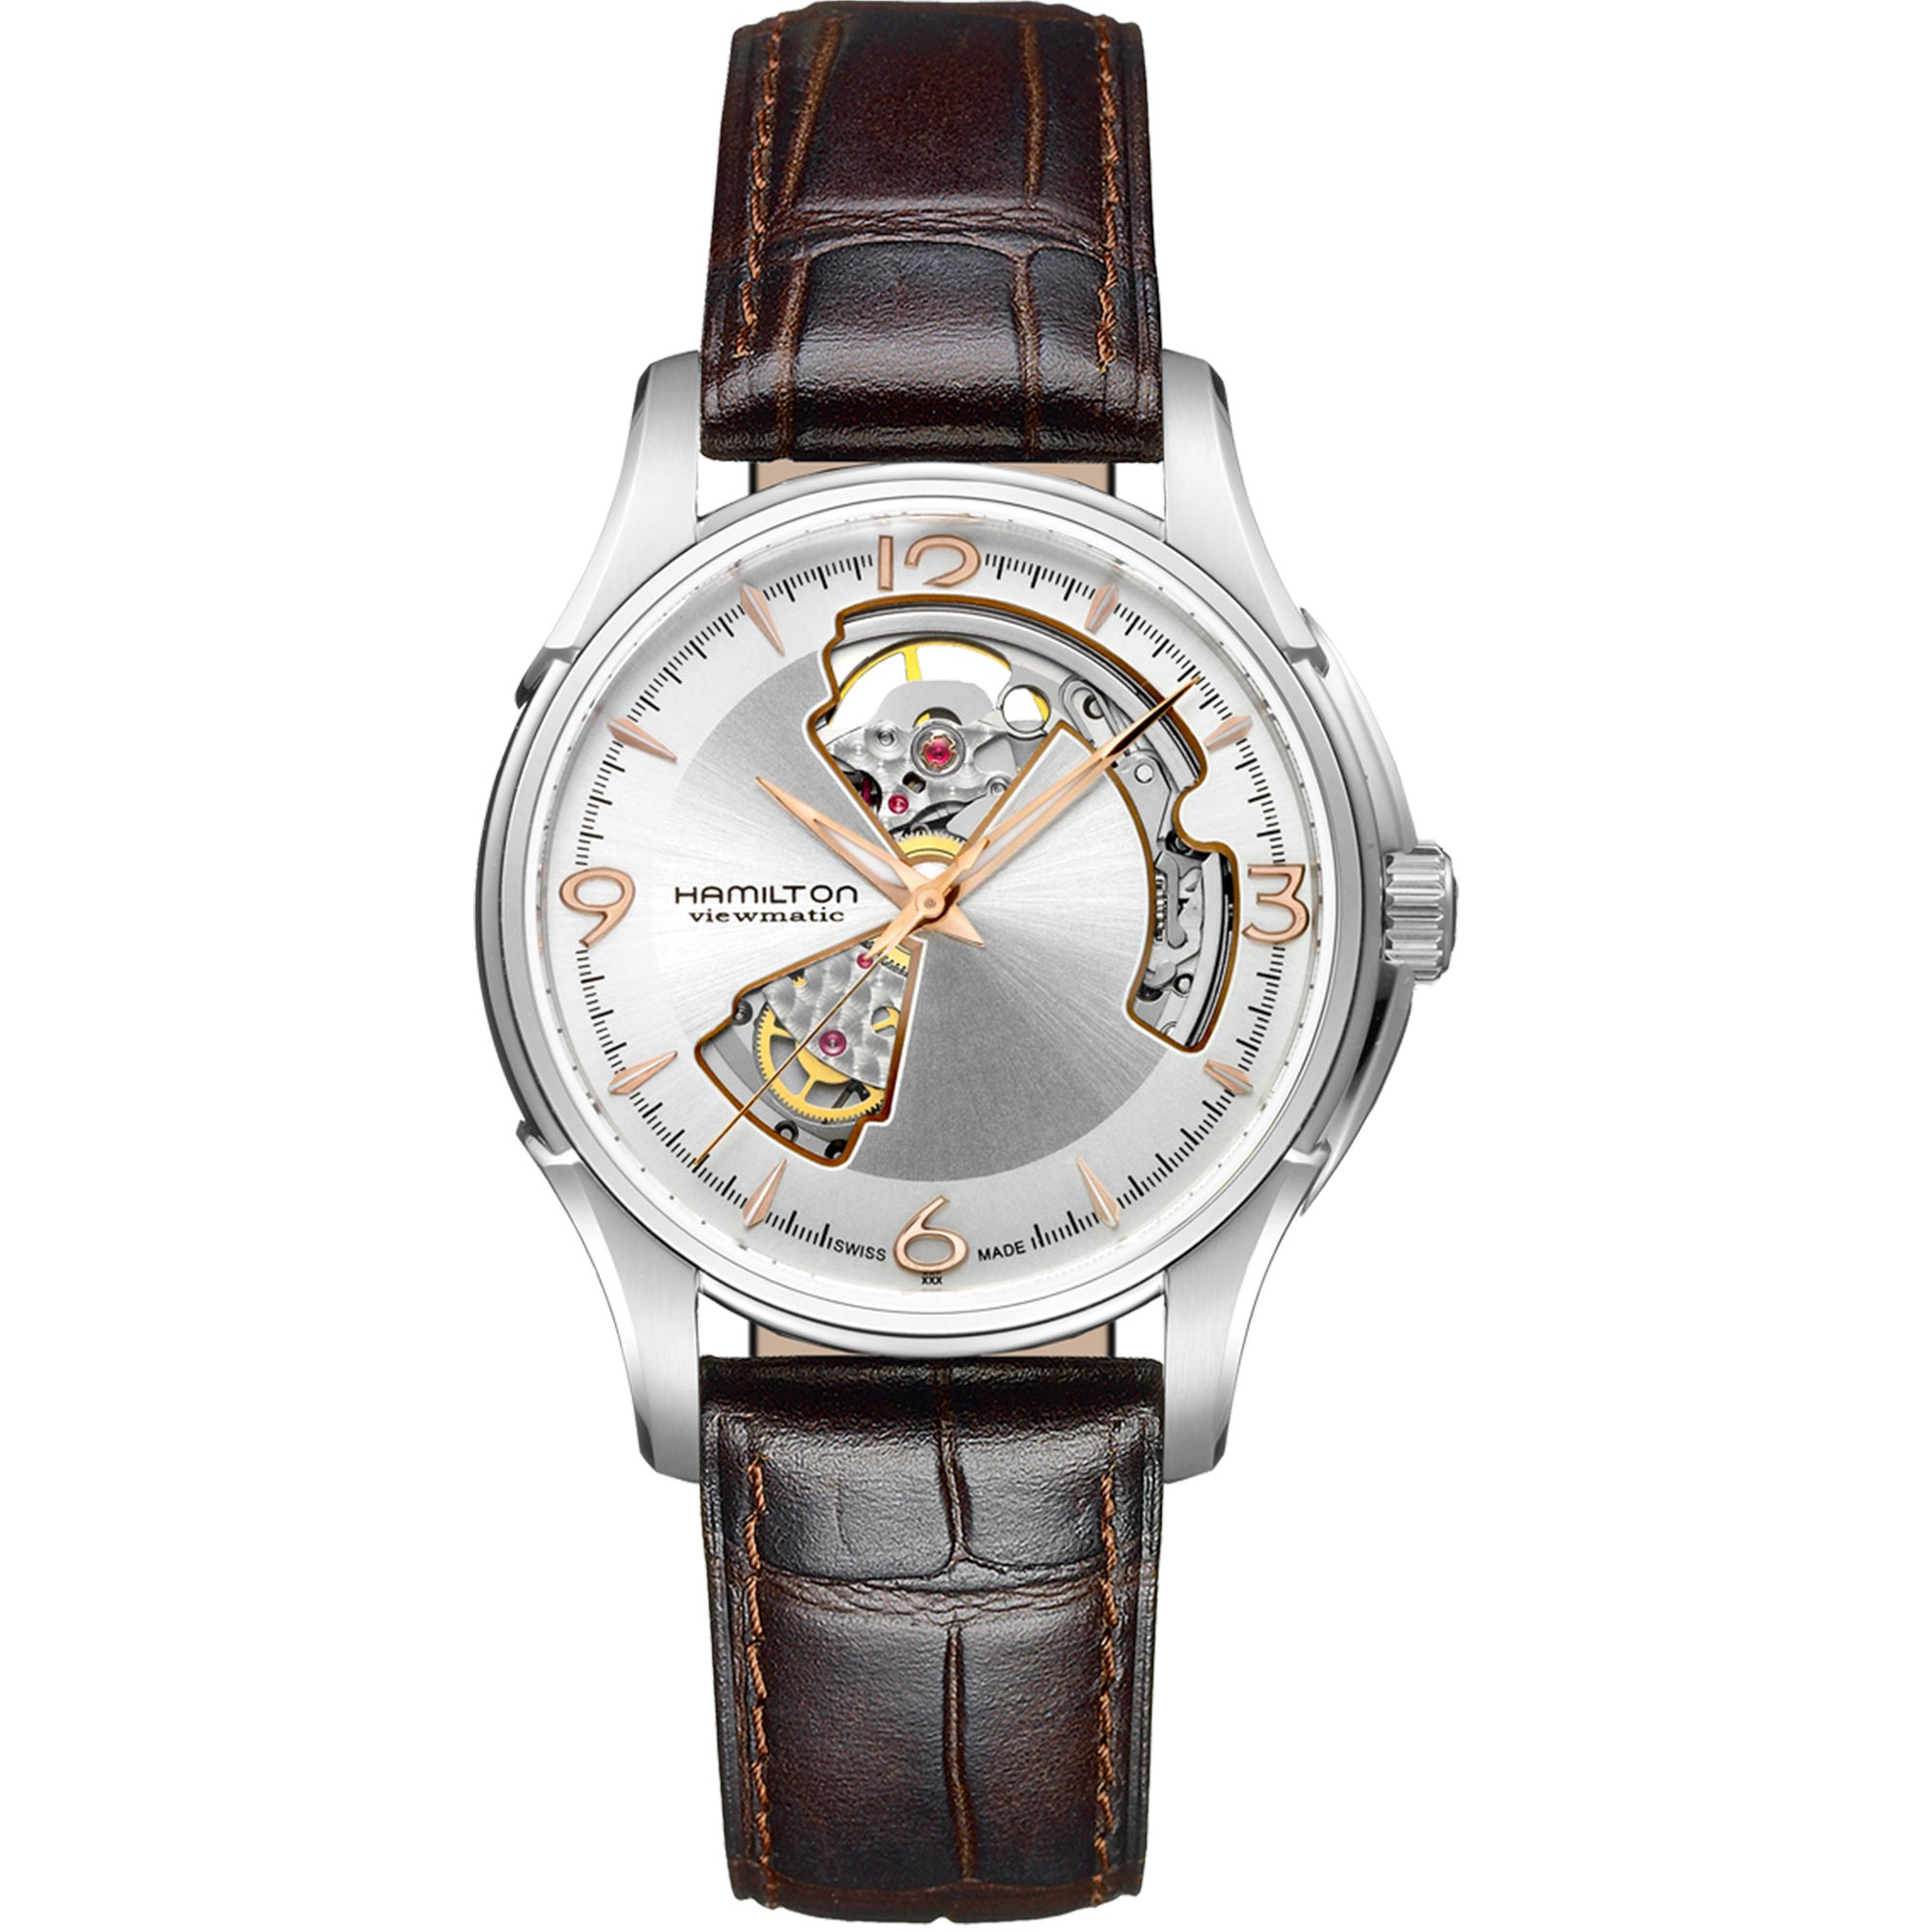 Hamilton Jazzmaster Automatic Open Heart Silver Dial Brown Leather Strap Men's Watch H32565555 RRP £725